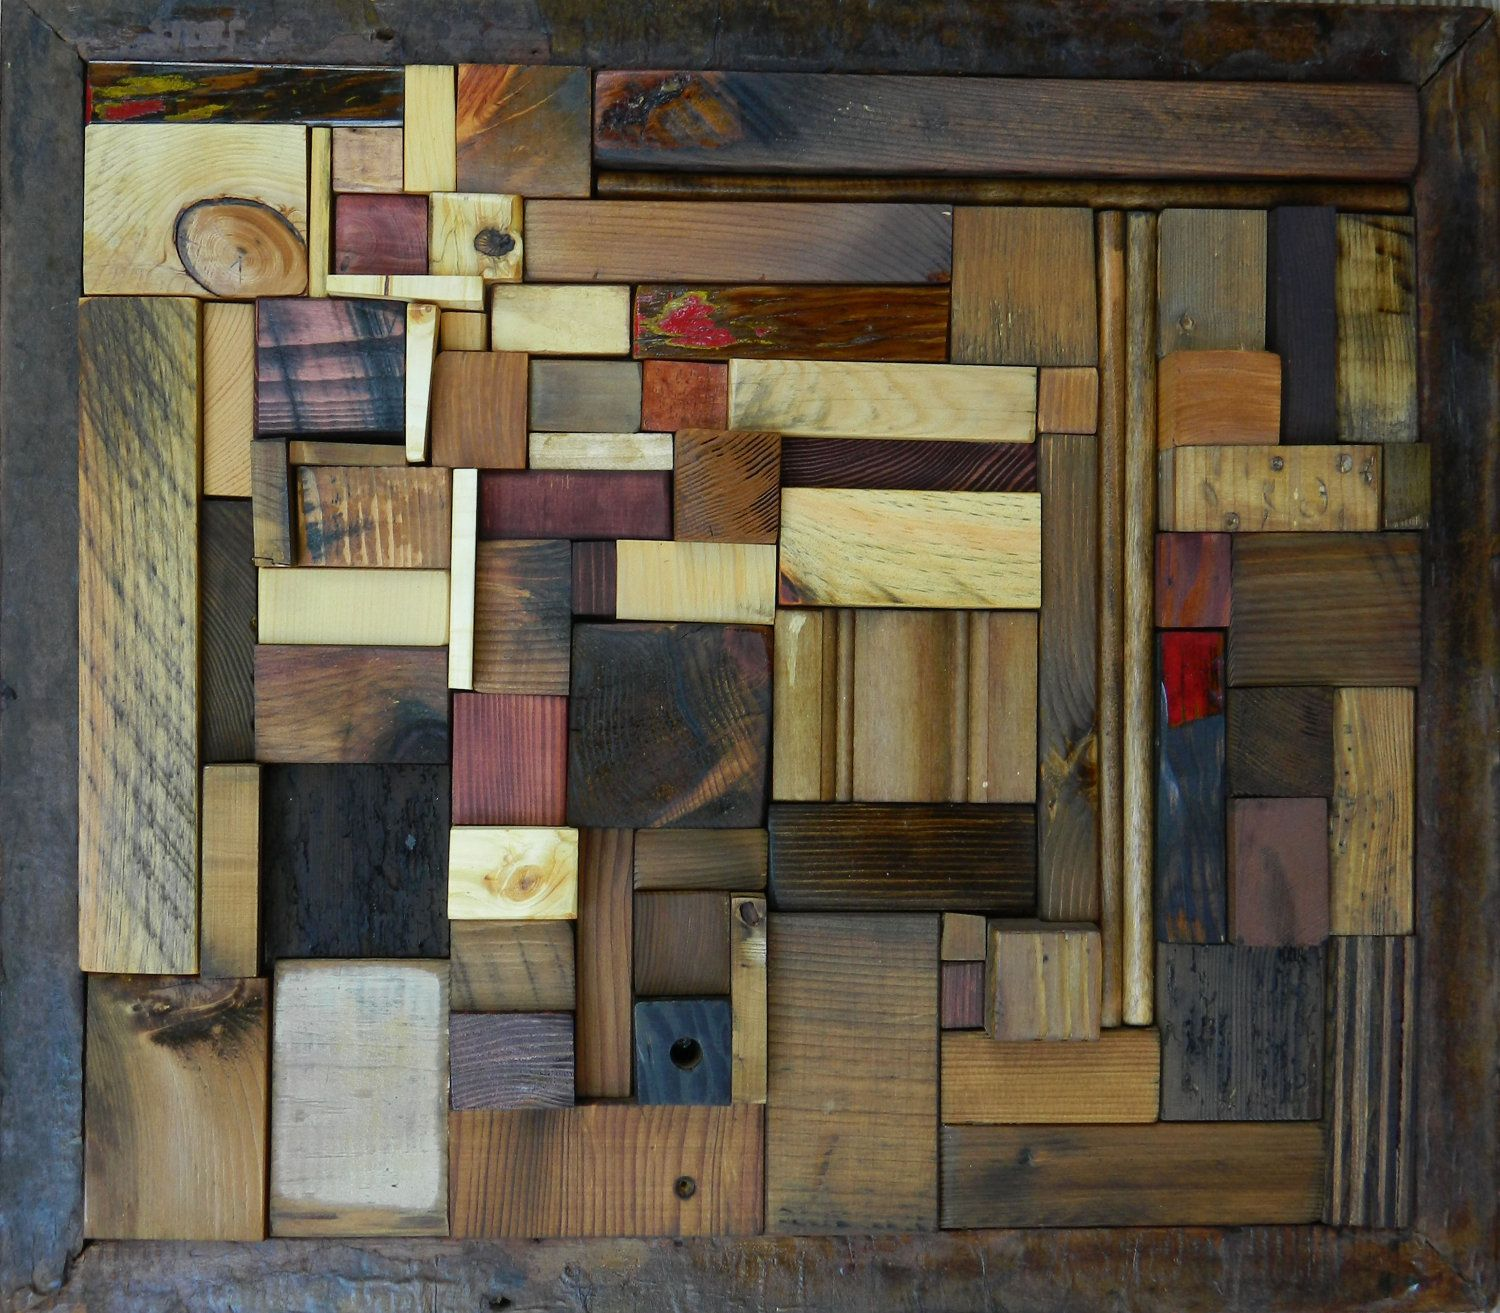 Abstract wood relief mosaic go around 37500 via etsy